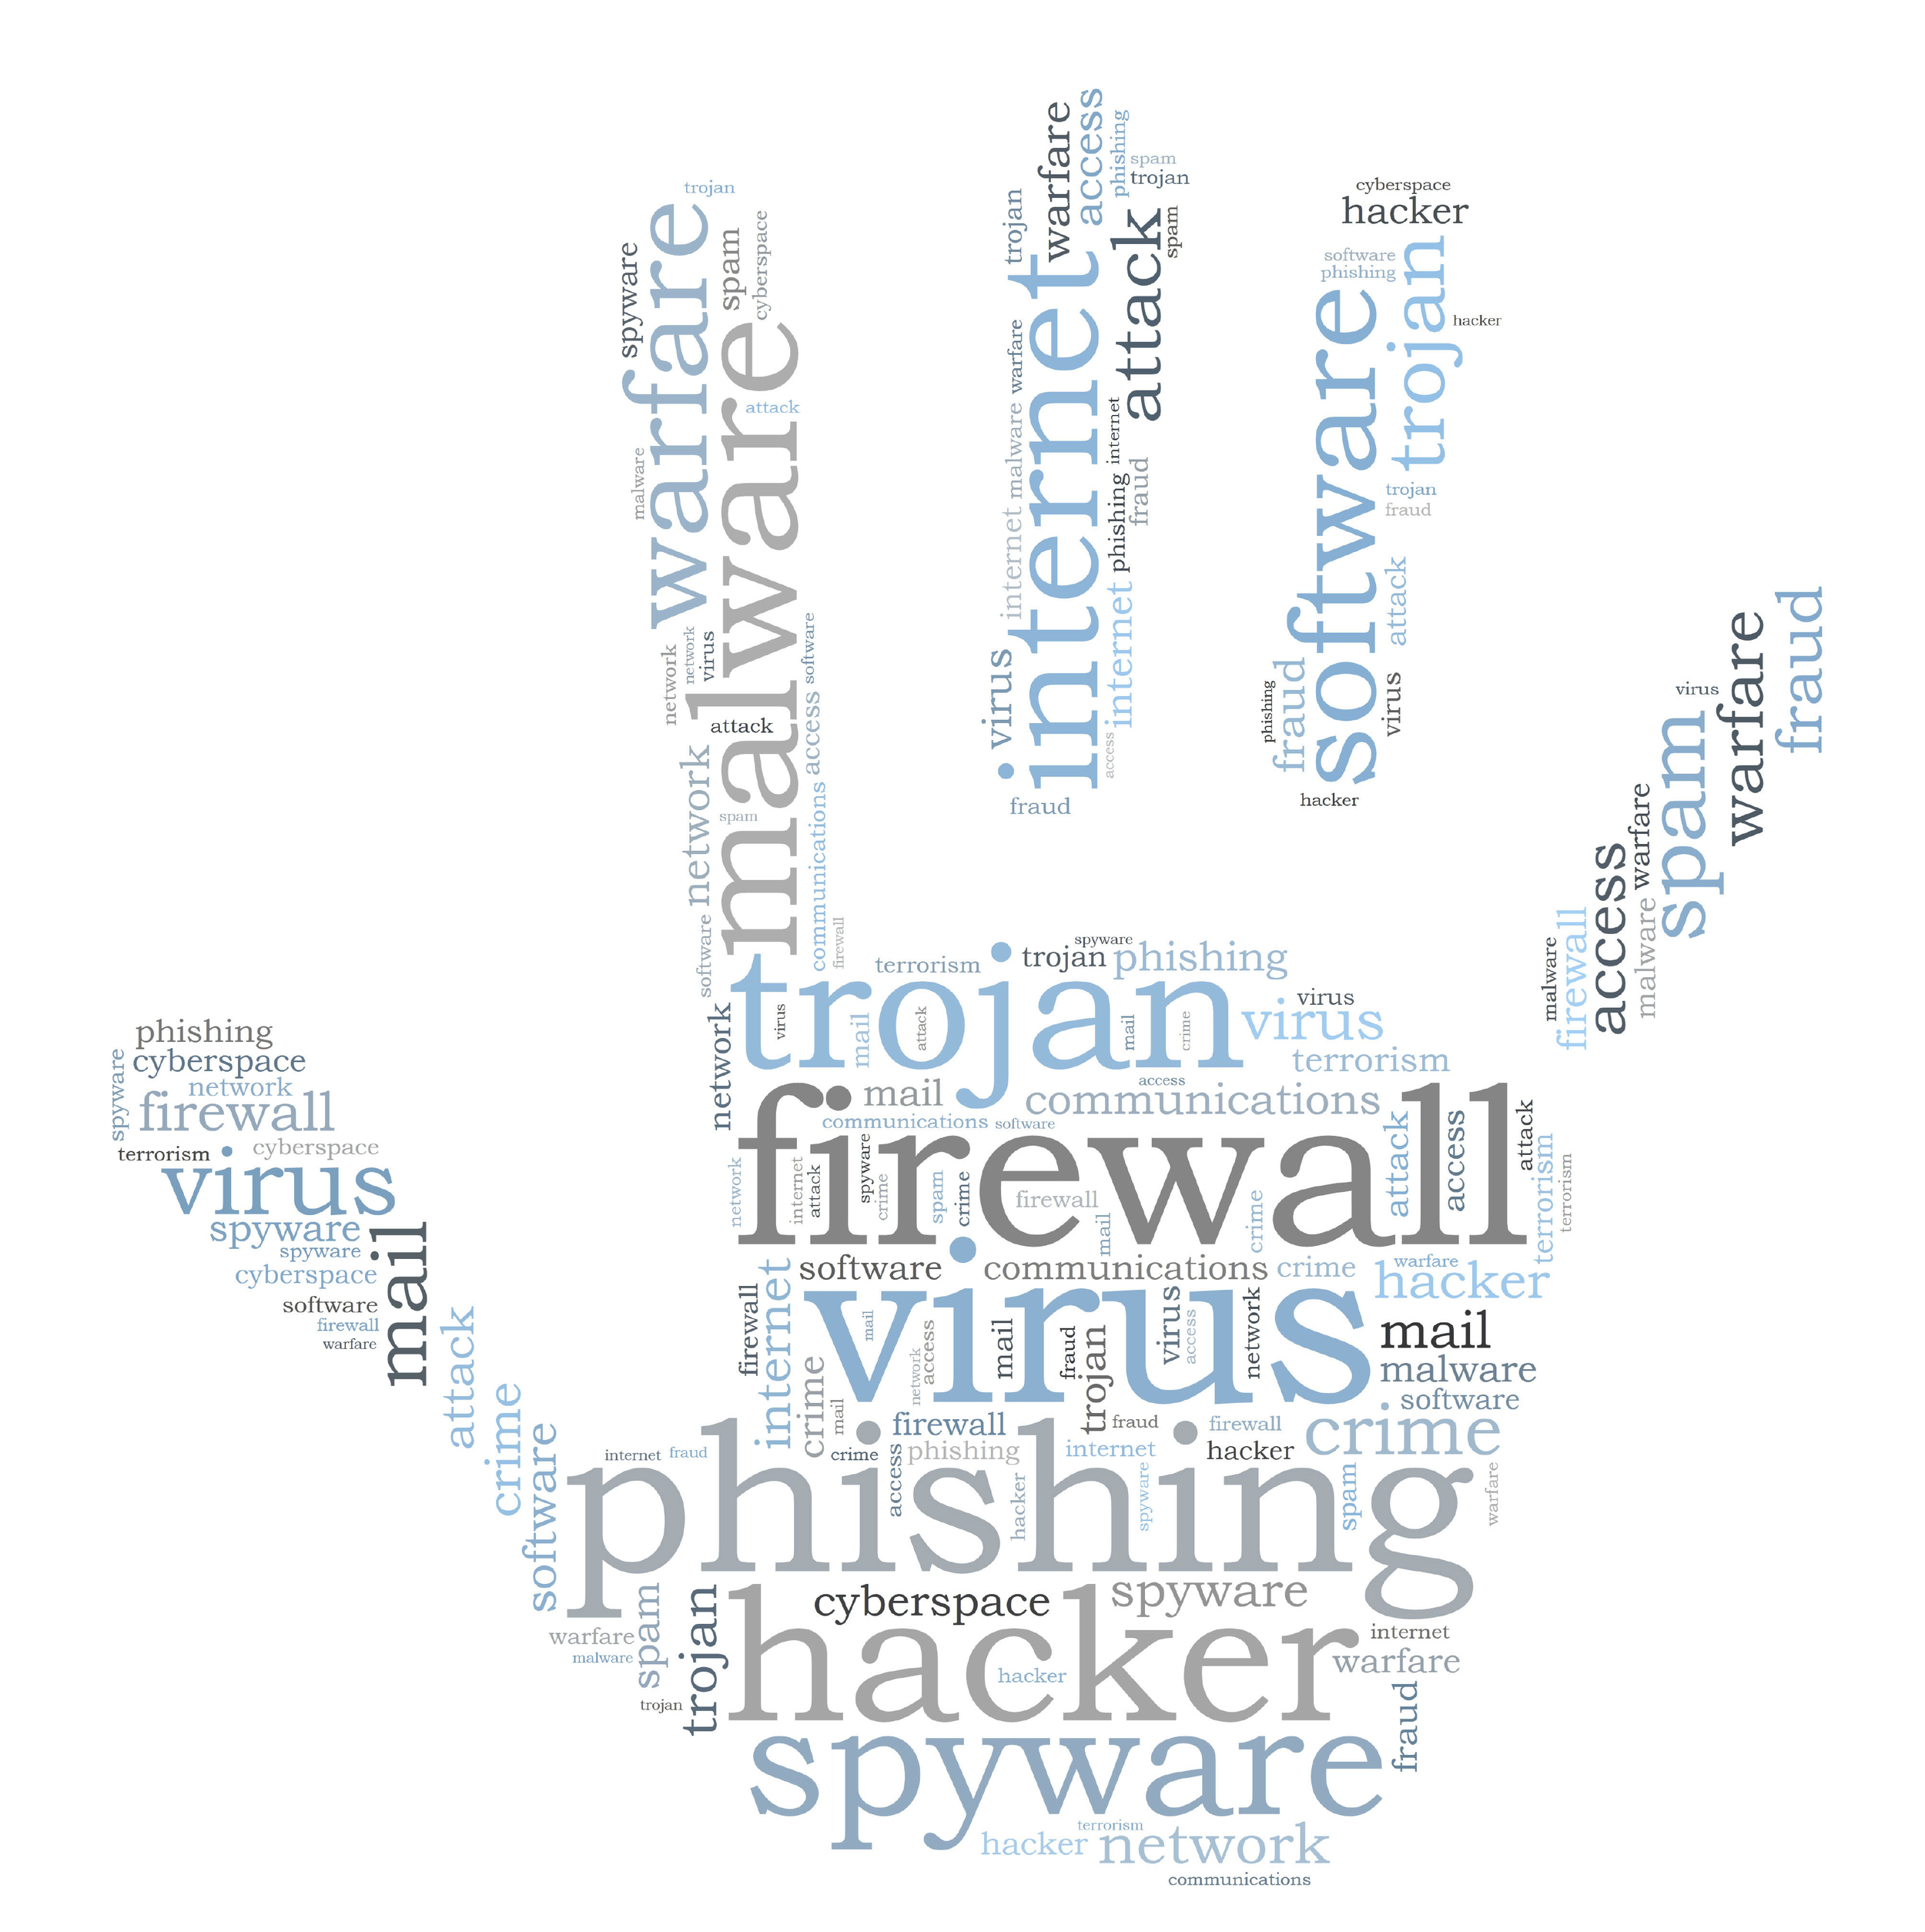 Hand Virus Firewall @ Home Computer Services Brian Myers 000038386716_Full.jpg